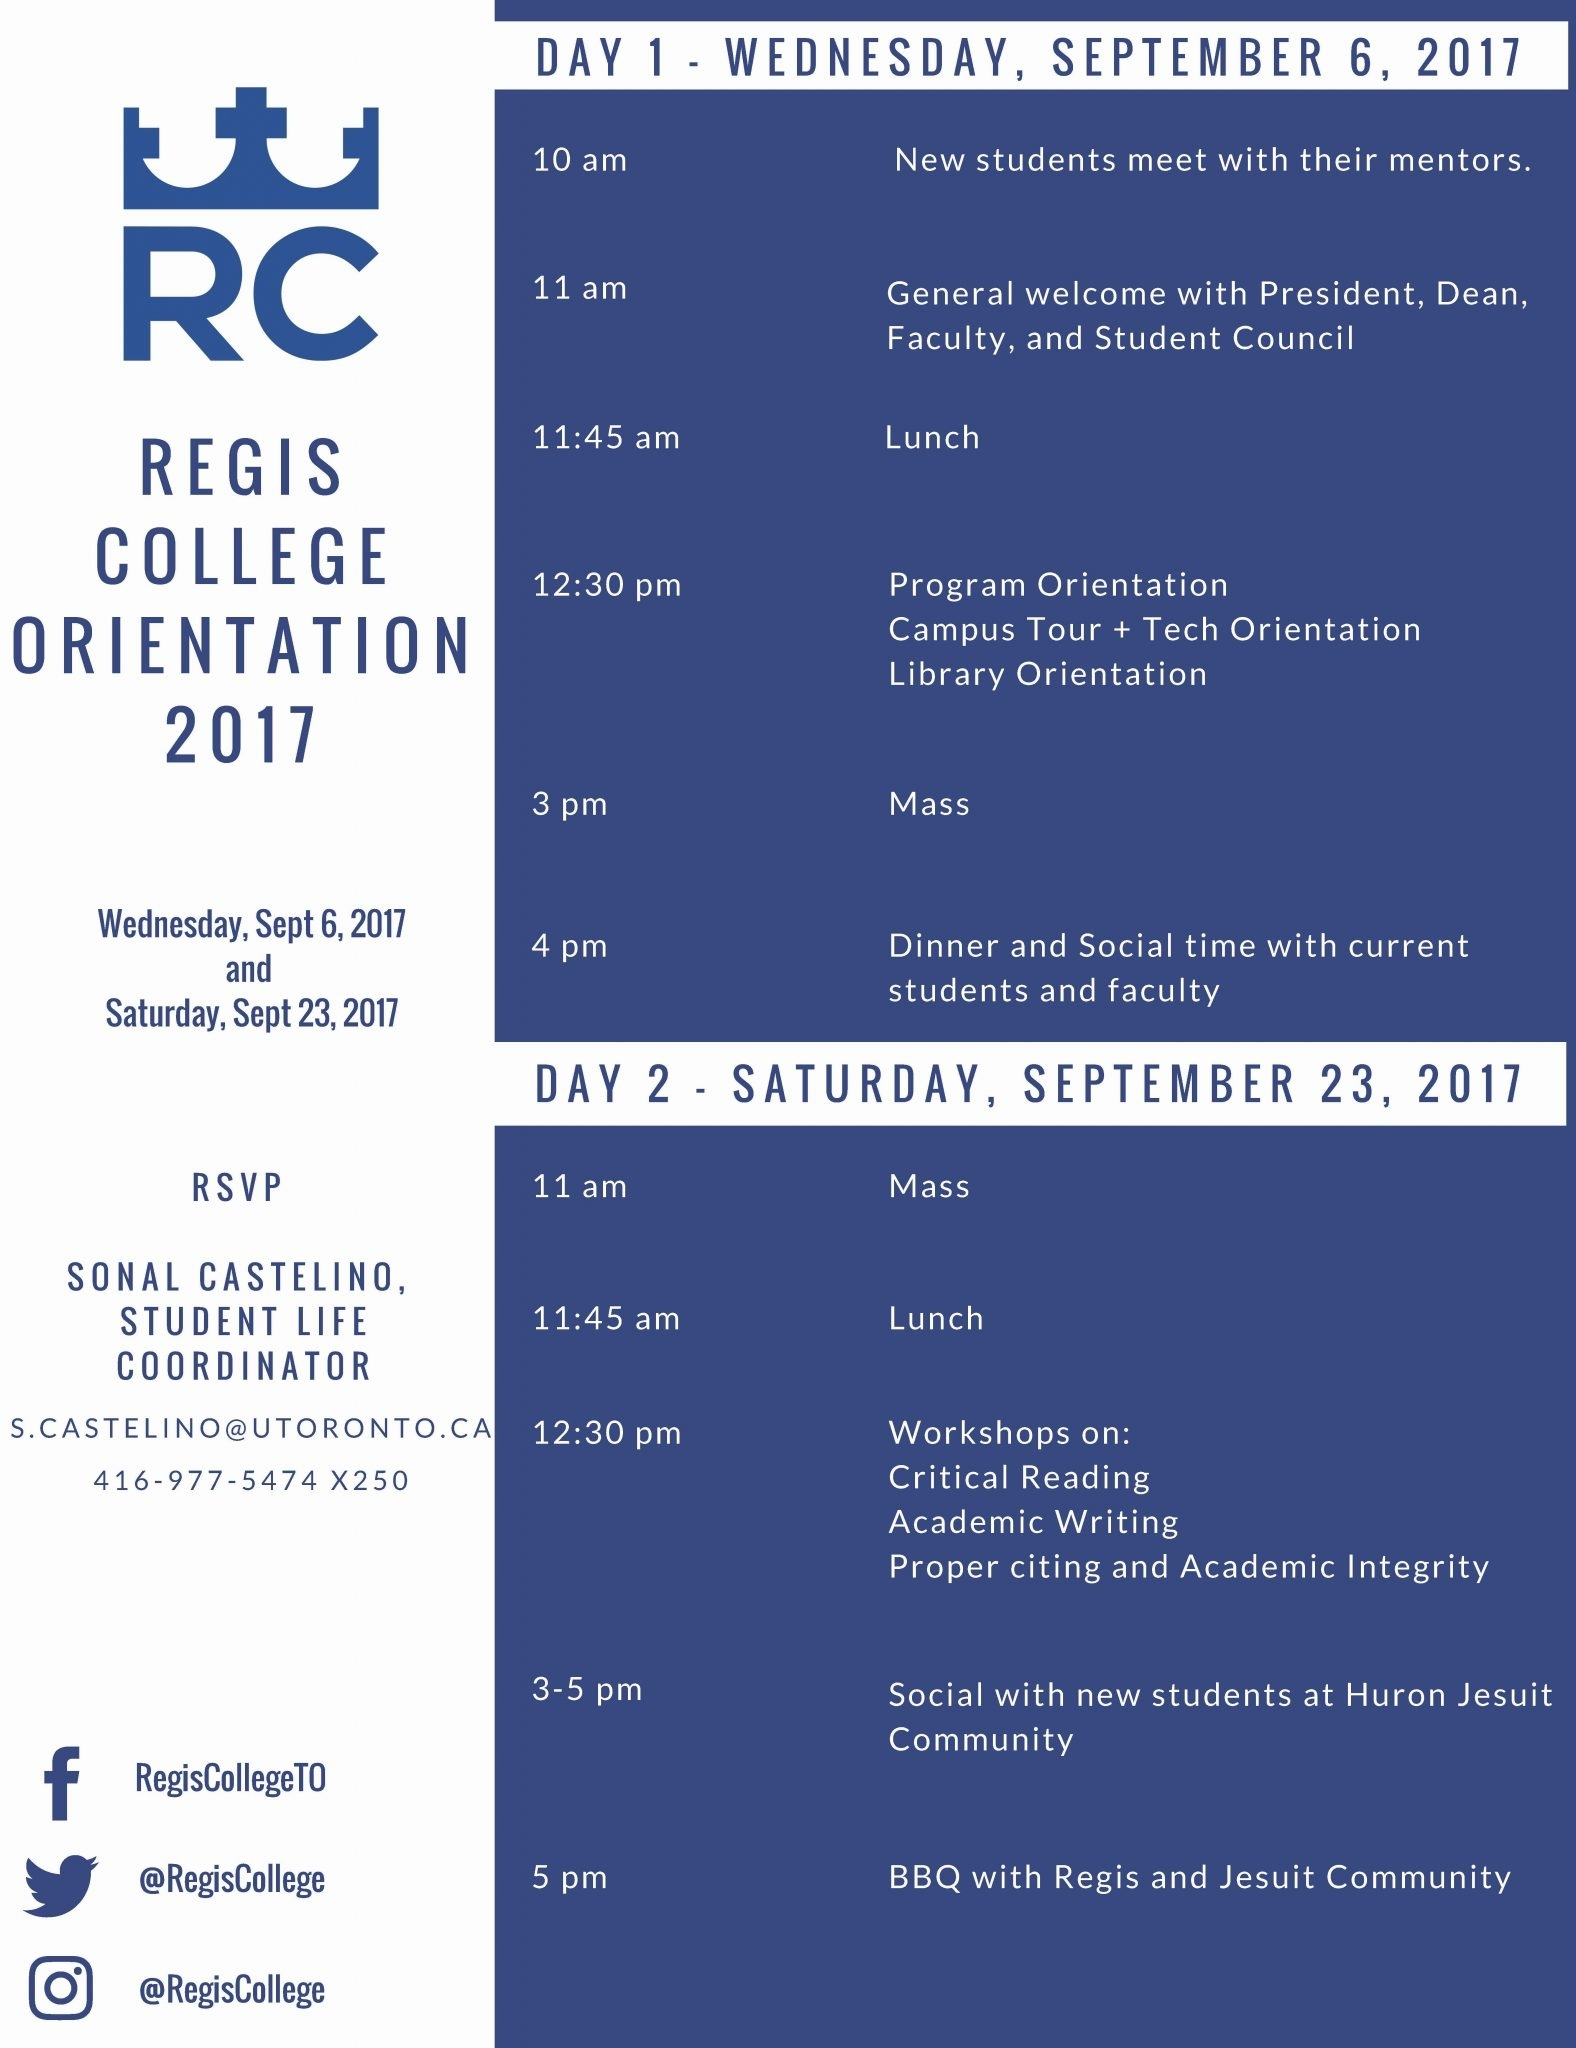 Regis College Student Orientation Day #1 (Mandatory For All